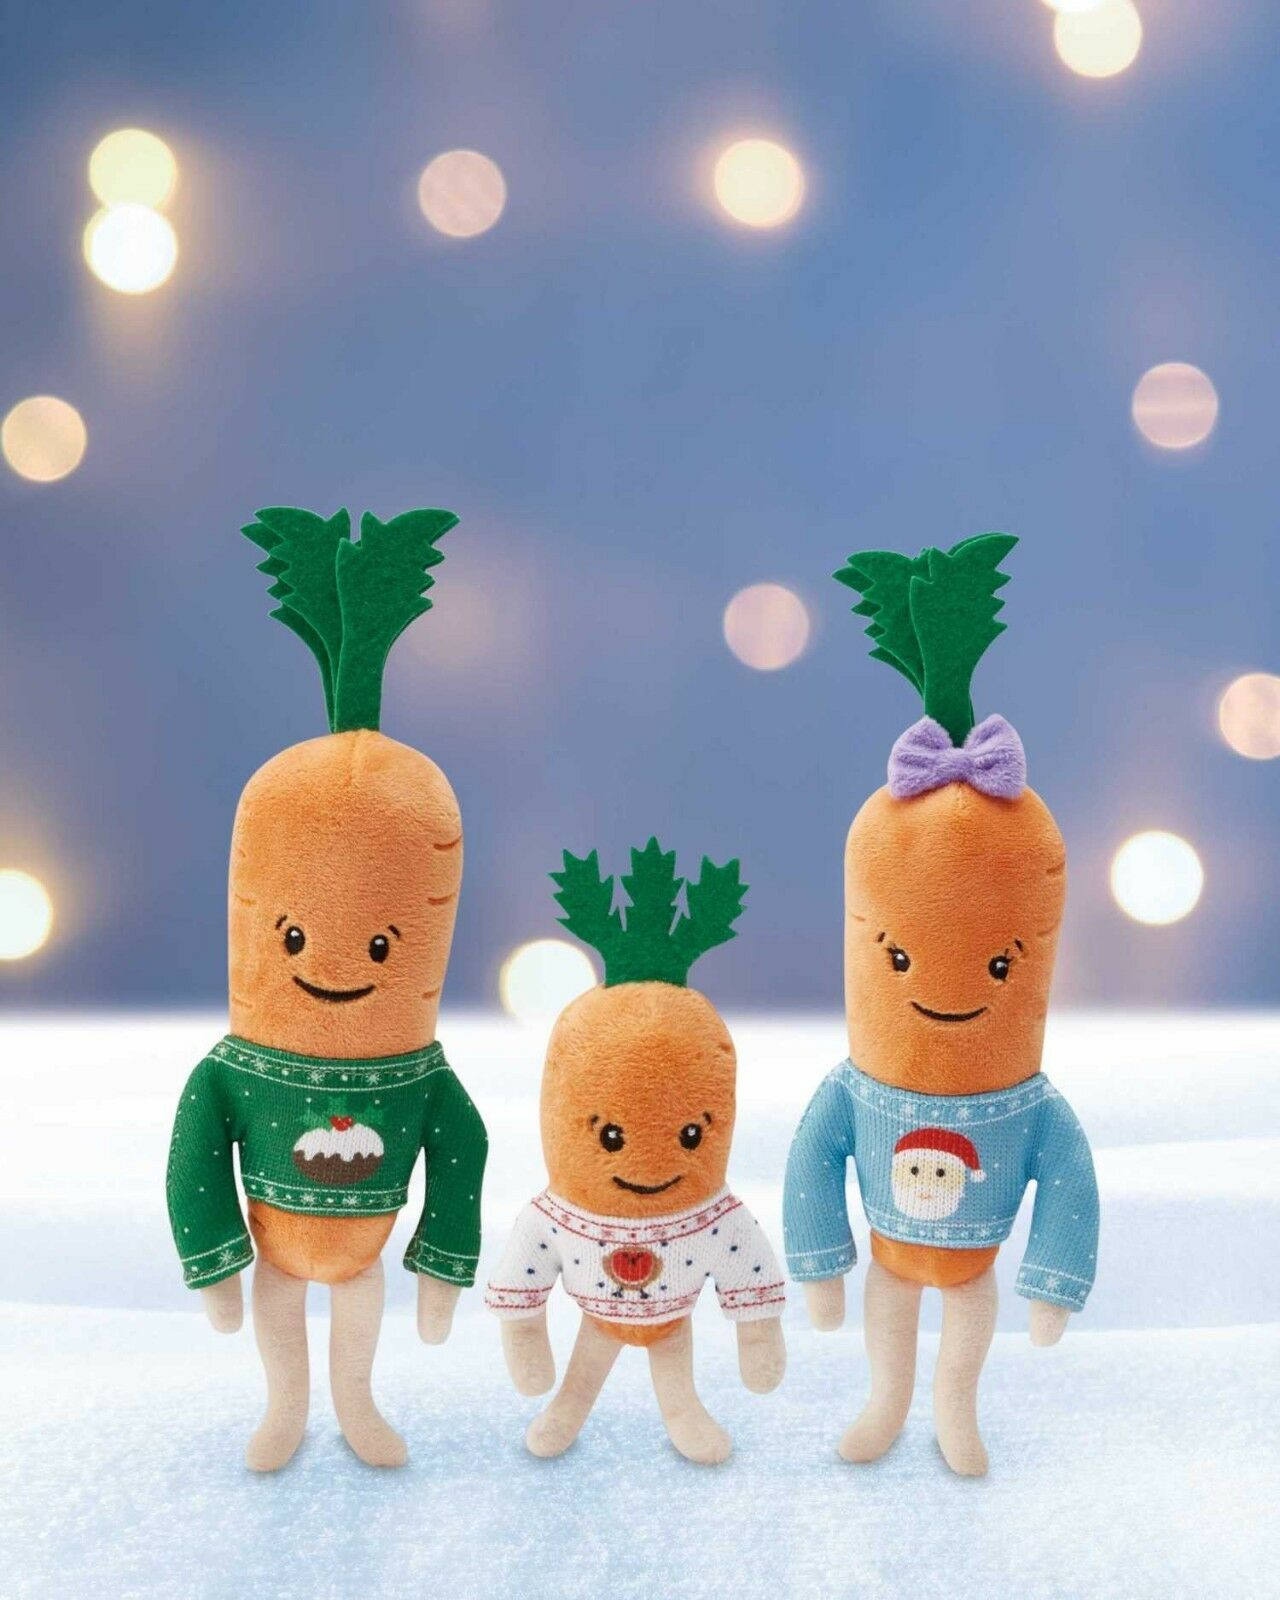 Kevin the Carred, Katie,Jasper, Chantenay, Baby Xmas & Pascal the Parsnip